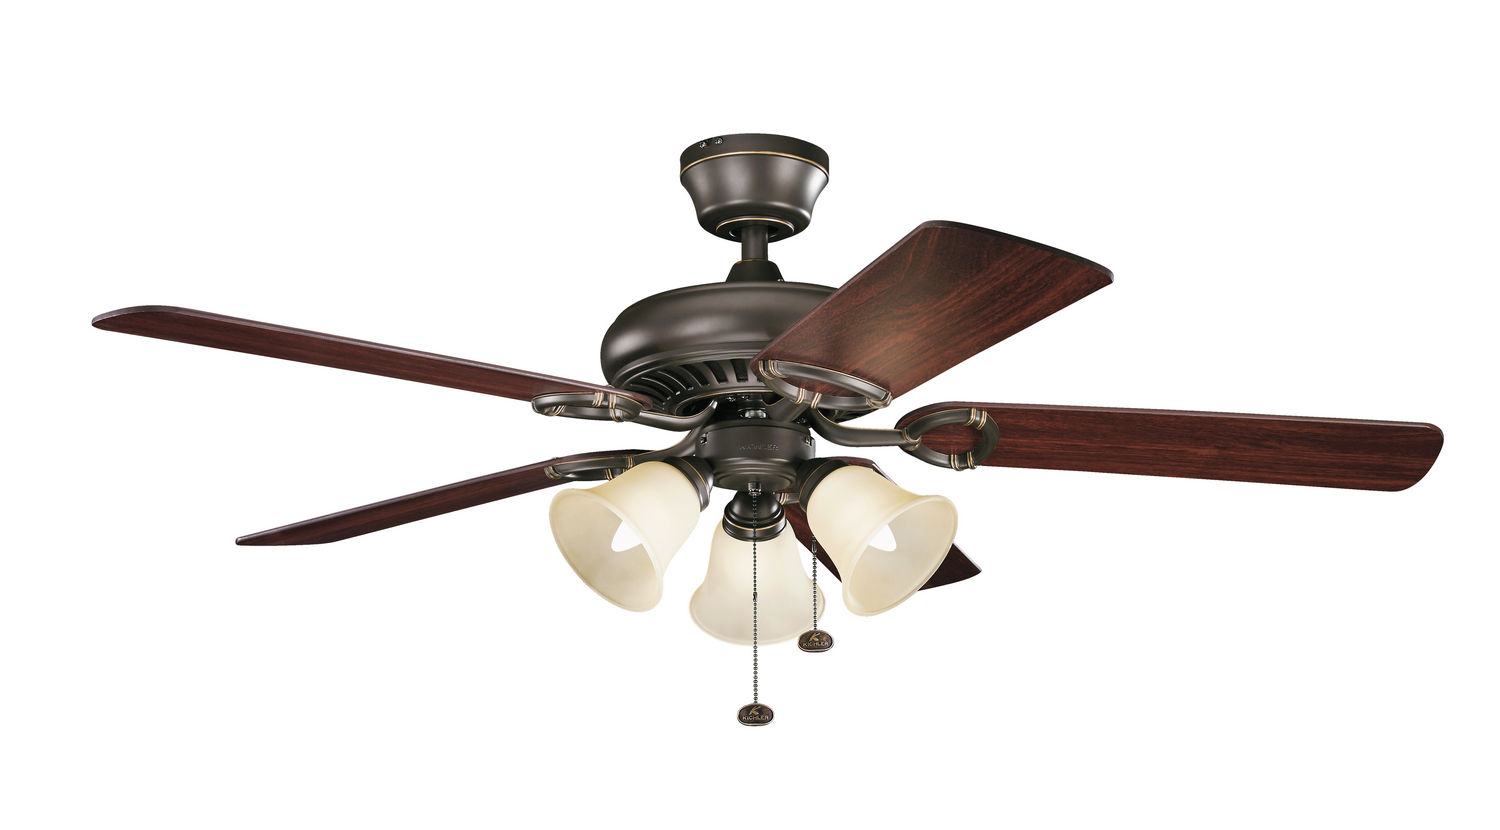 52 inchCeiling Fan from the Sutter Place Premier collection by Kichler 339400OZ